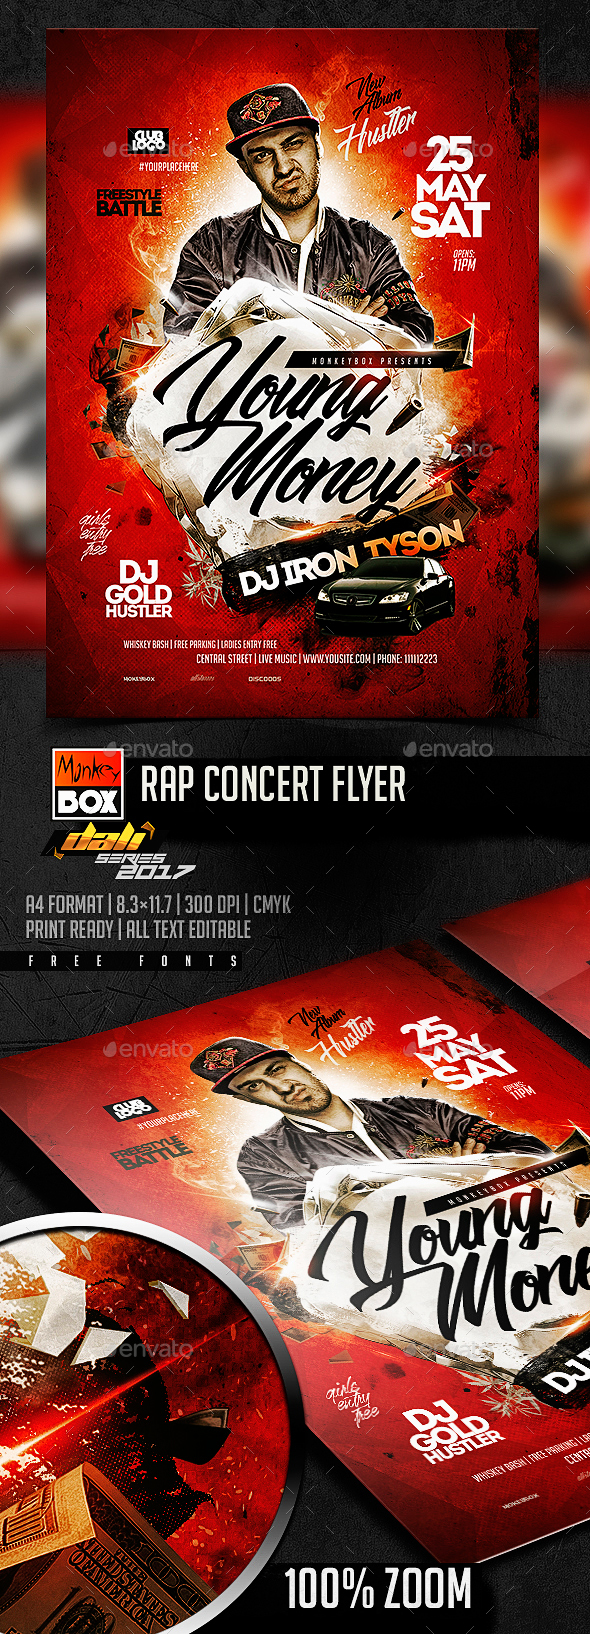 Rap Concert Flyer - Flyers Print Templates